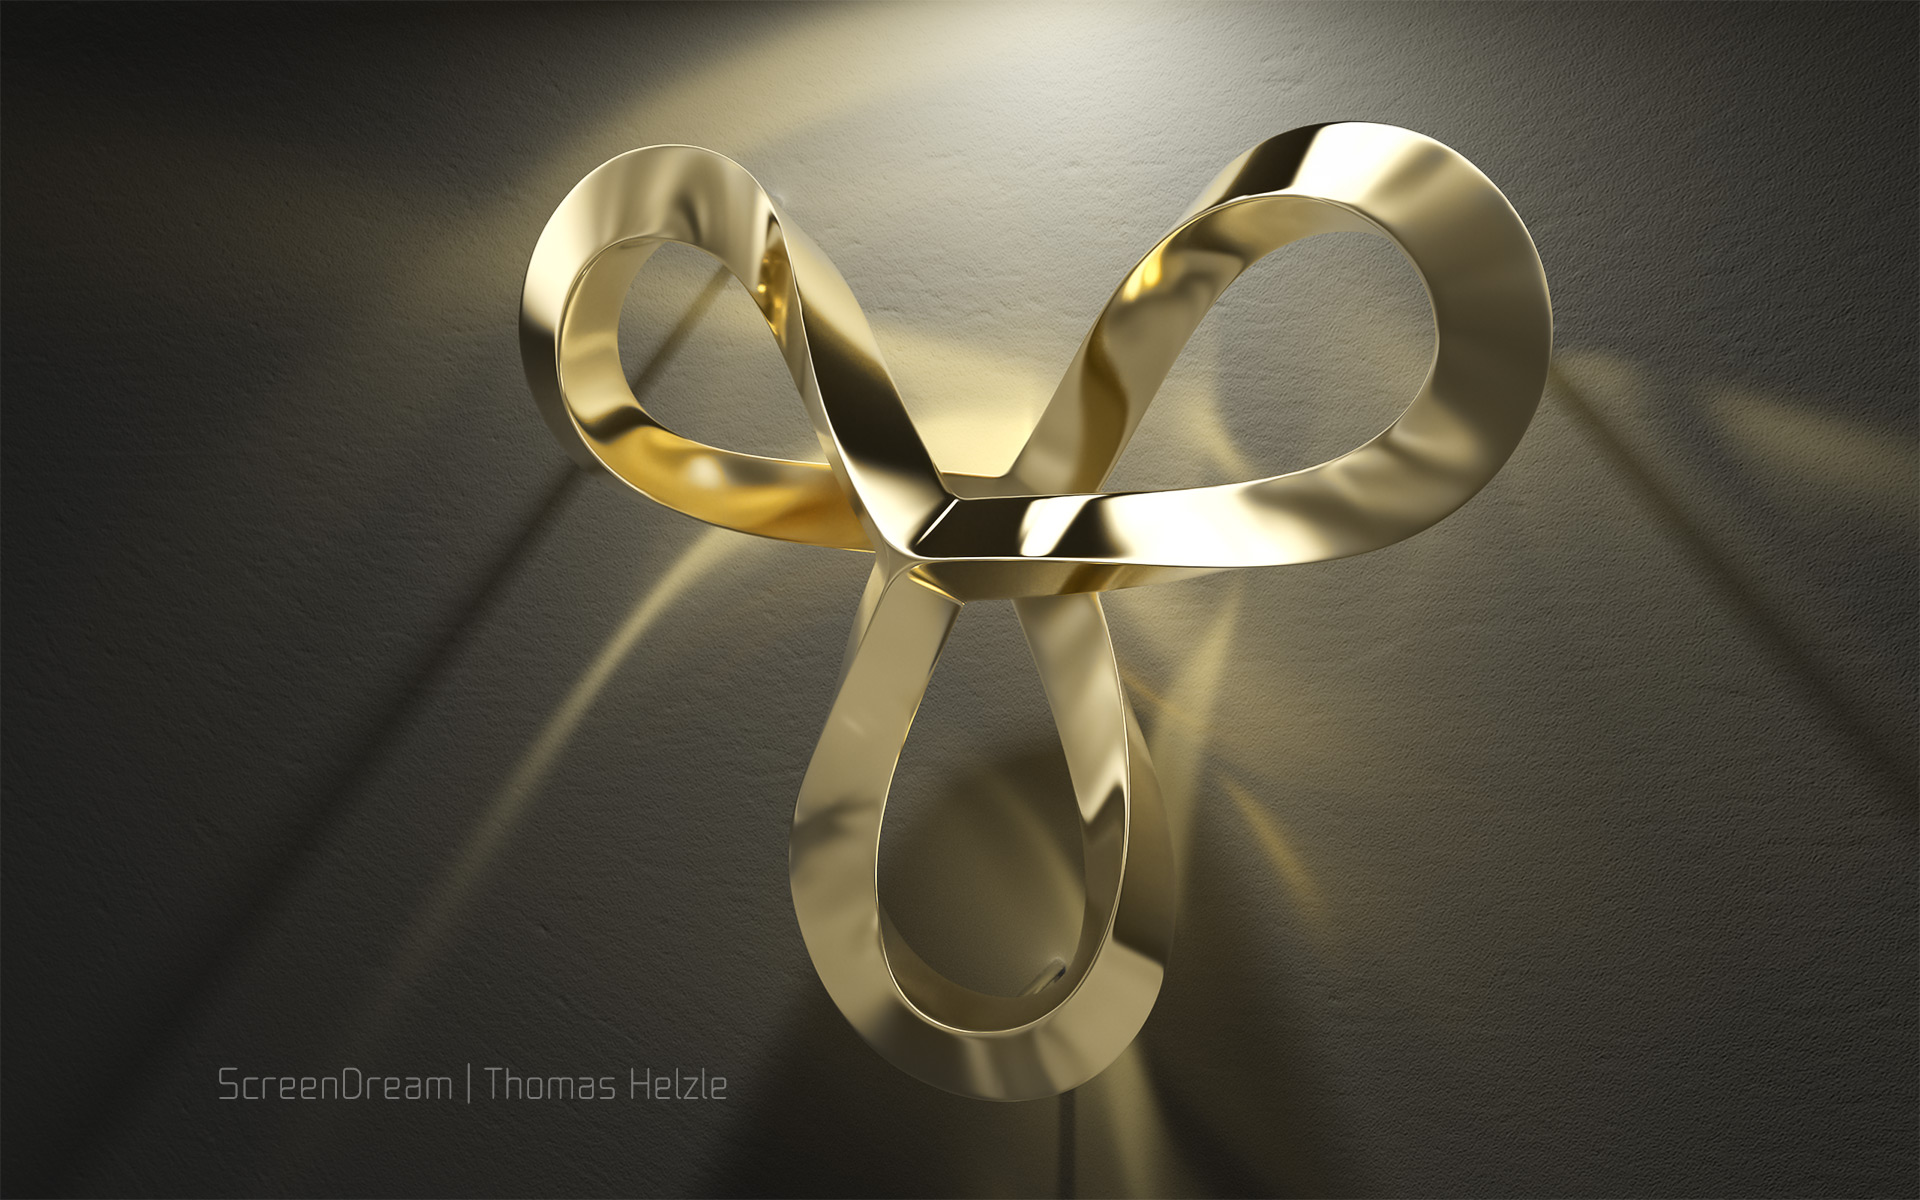 Volker Regenstein: Sculpture Gold Caustics